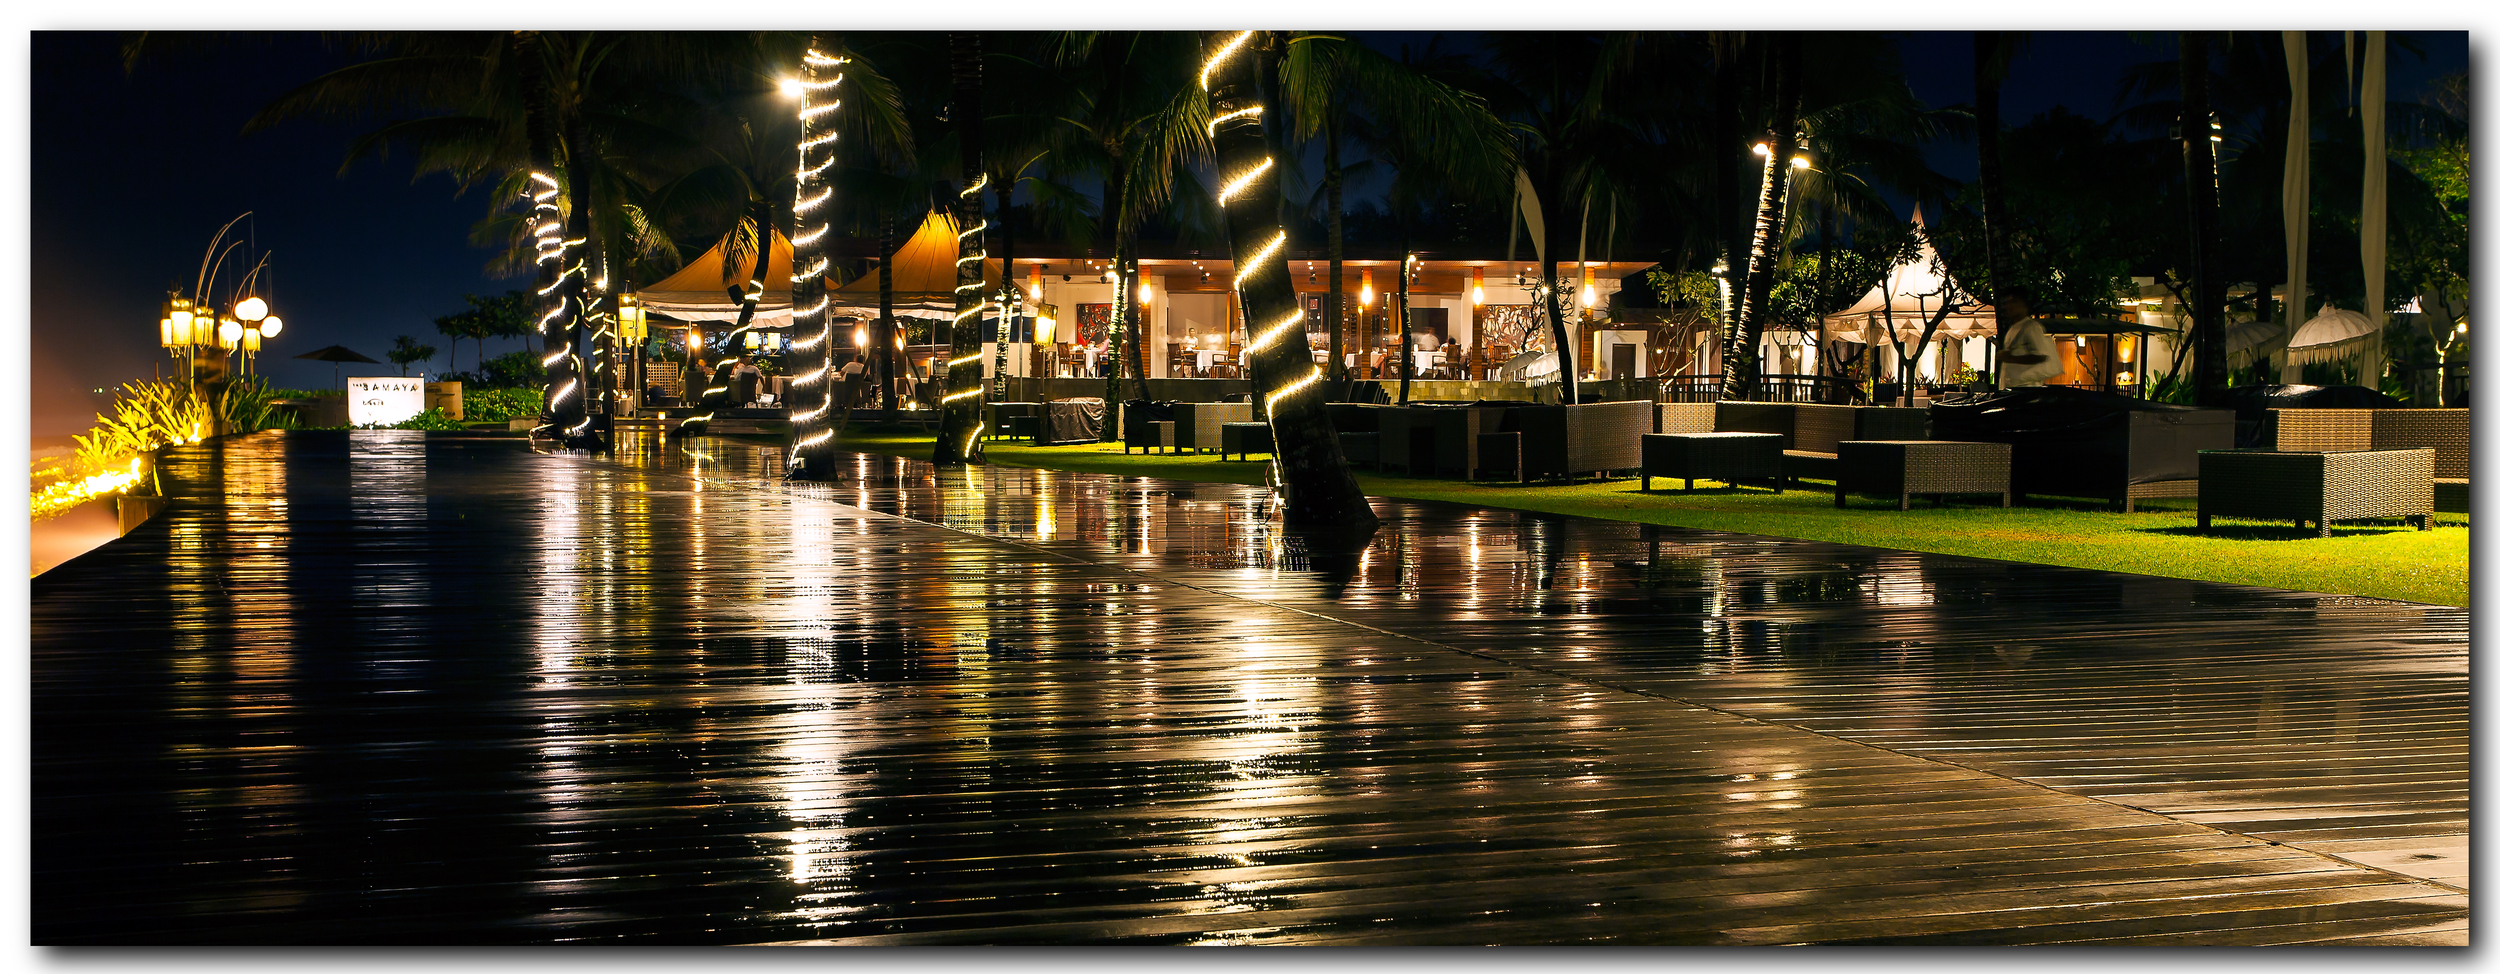 Breezes Restaurant at night; from the beach